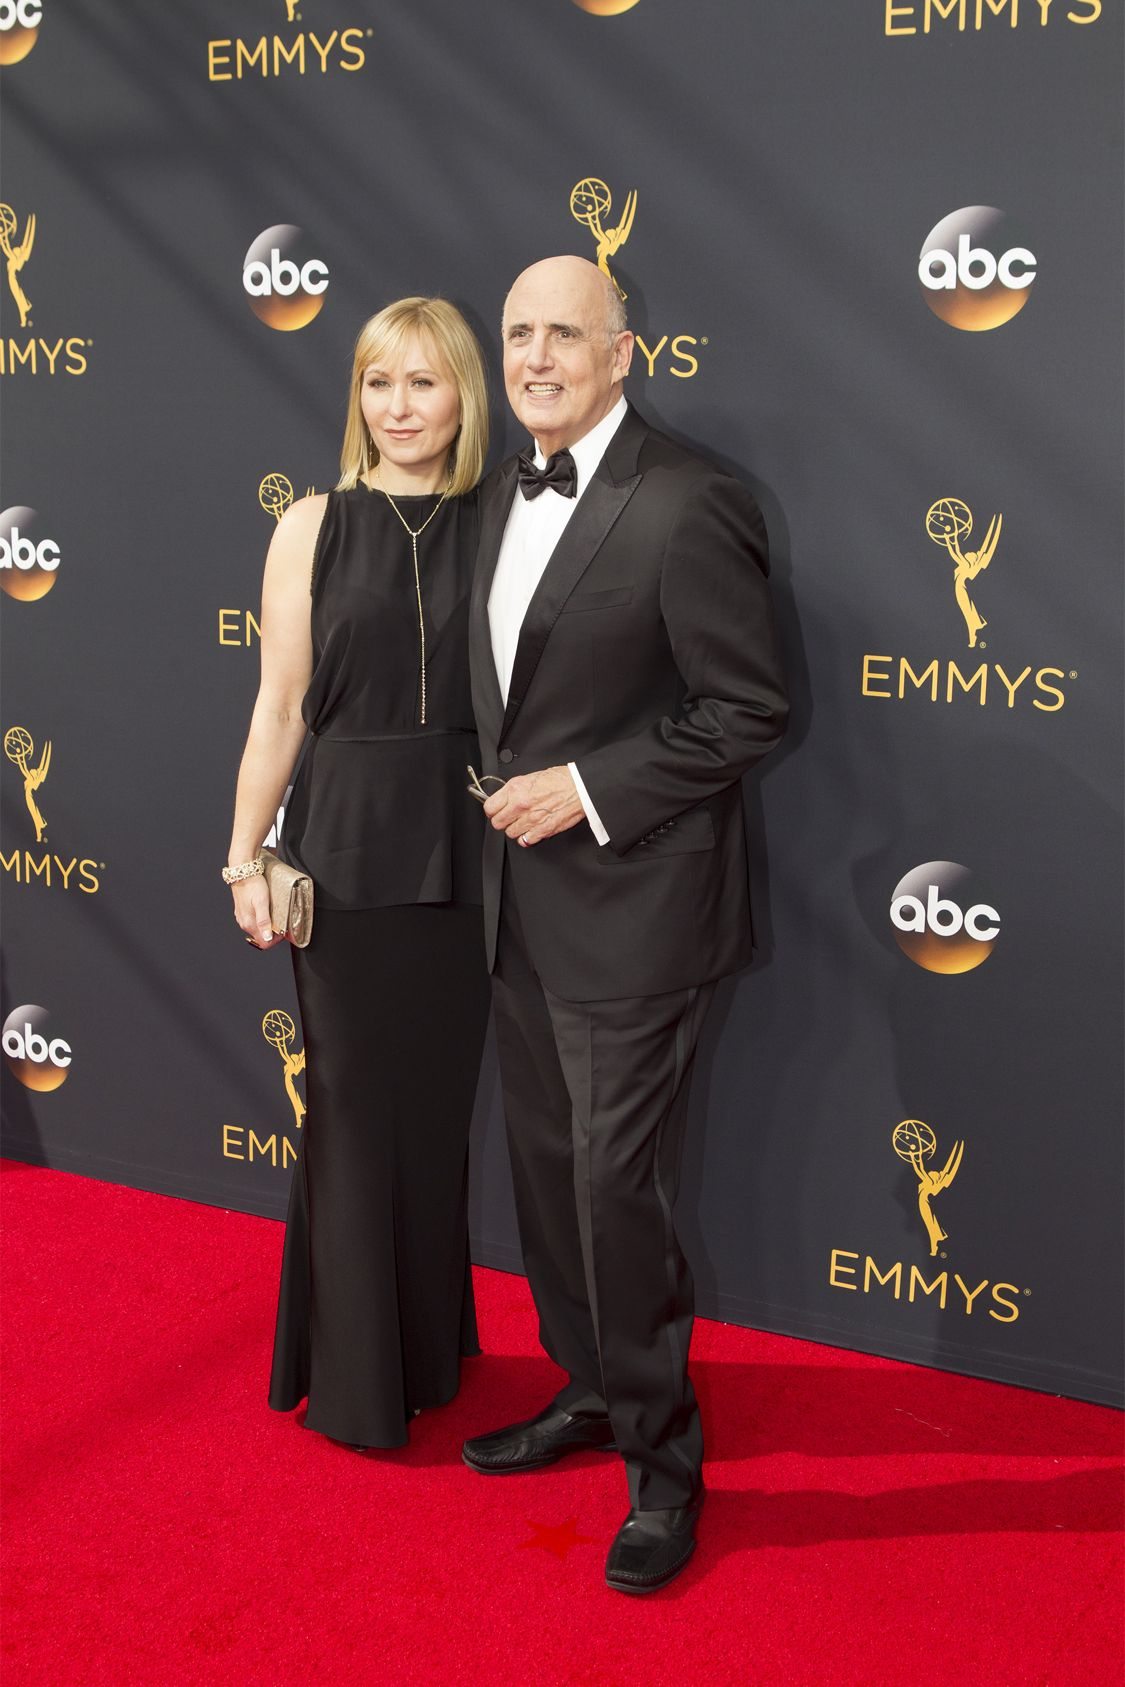 """THE 68TH EMMY(r) AWARDS - """"The 68th Emmy Awards"""" broadcasts live from The Microsoft Theater in Los Angeles, Sunday, September 18 (7:00-11:00 p.m. EDT/4:00-8:00 p.m. PDT), on ABC and is hosted by Jimmy Kimmel. (ABC/Rick Rowell) JEFFREY TAMBOR"""